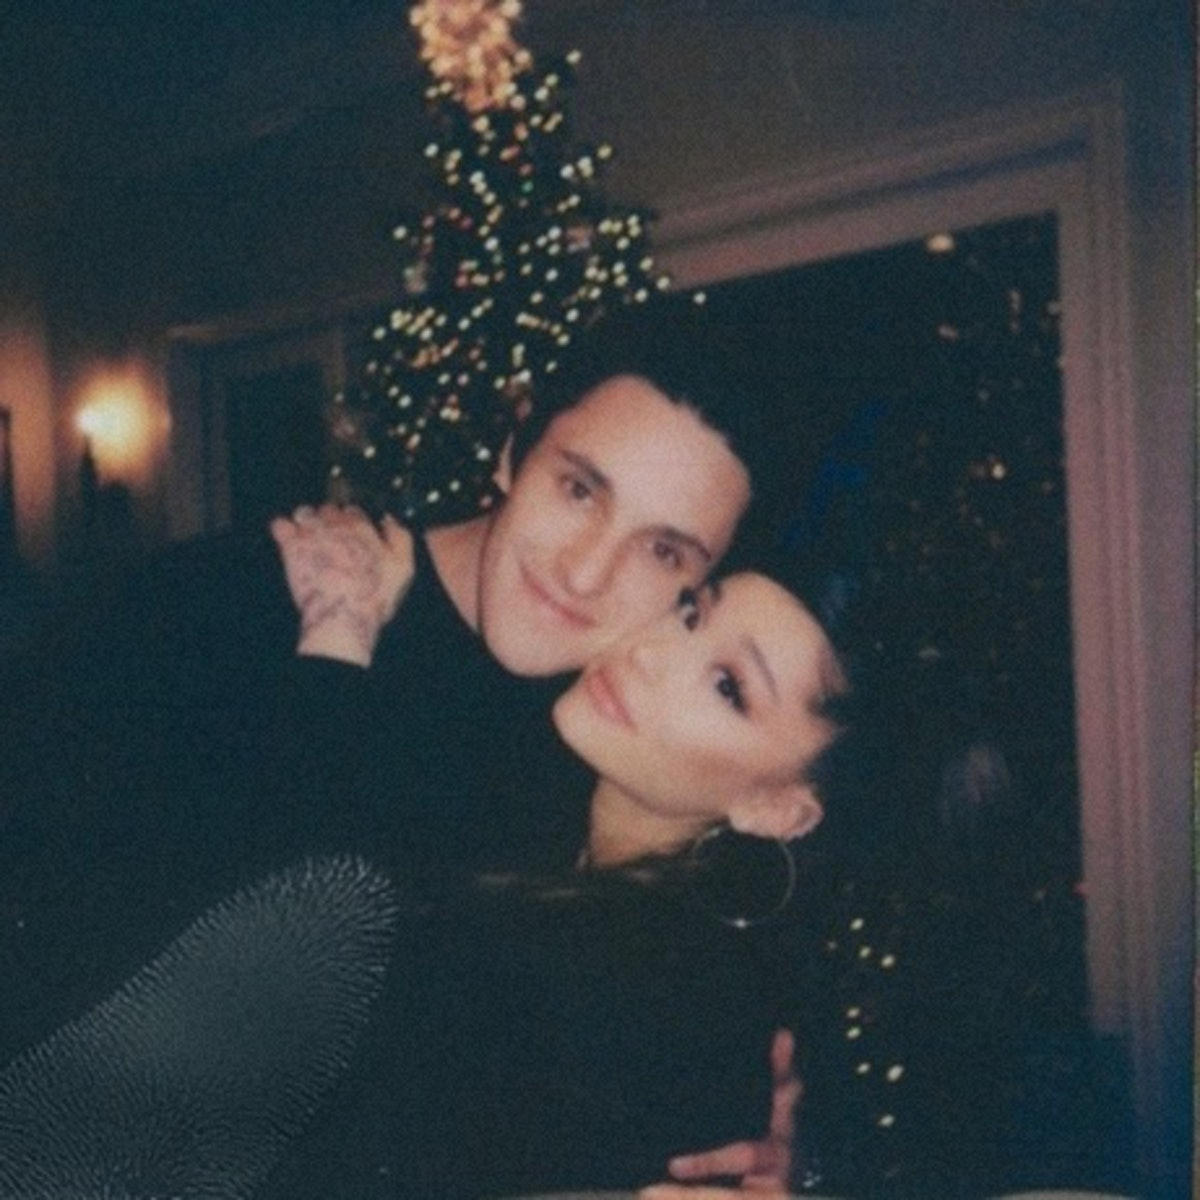 Dalton and Ariana hugging in front of a Christmas tree